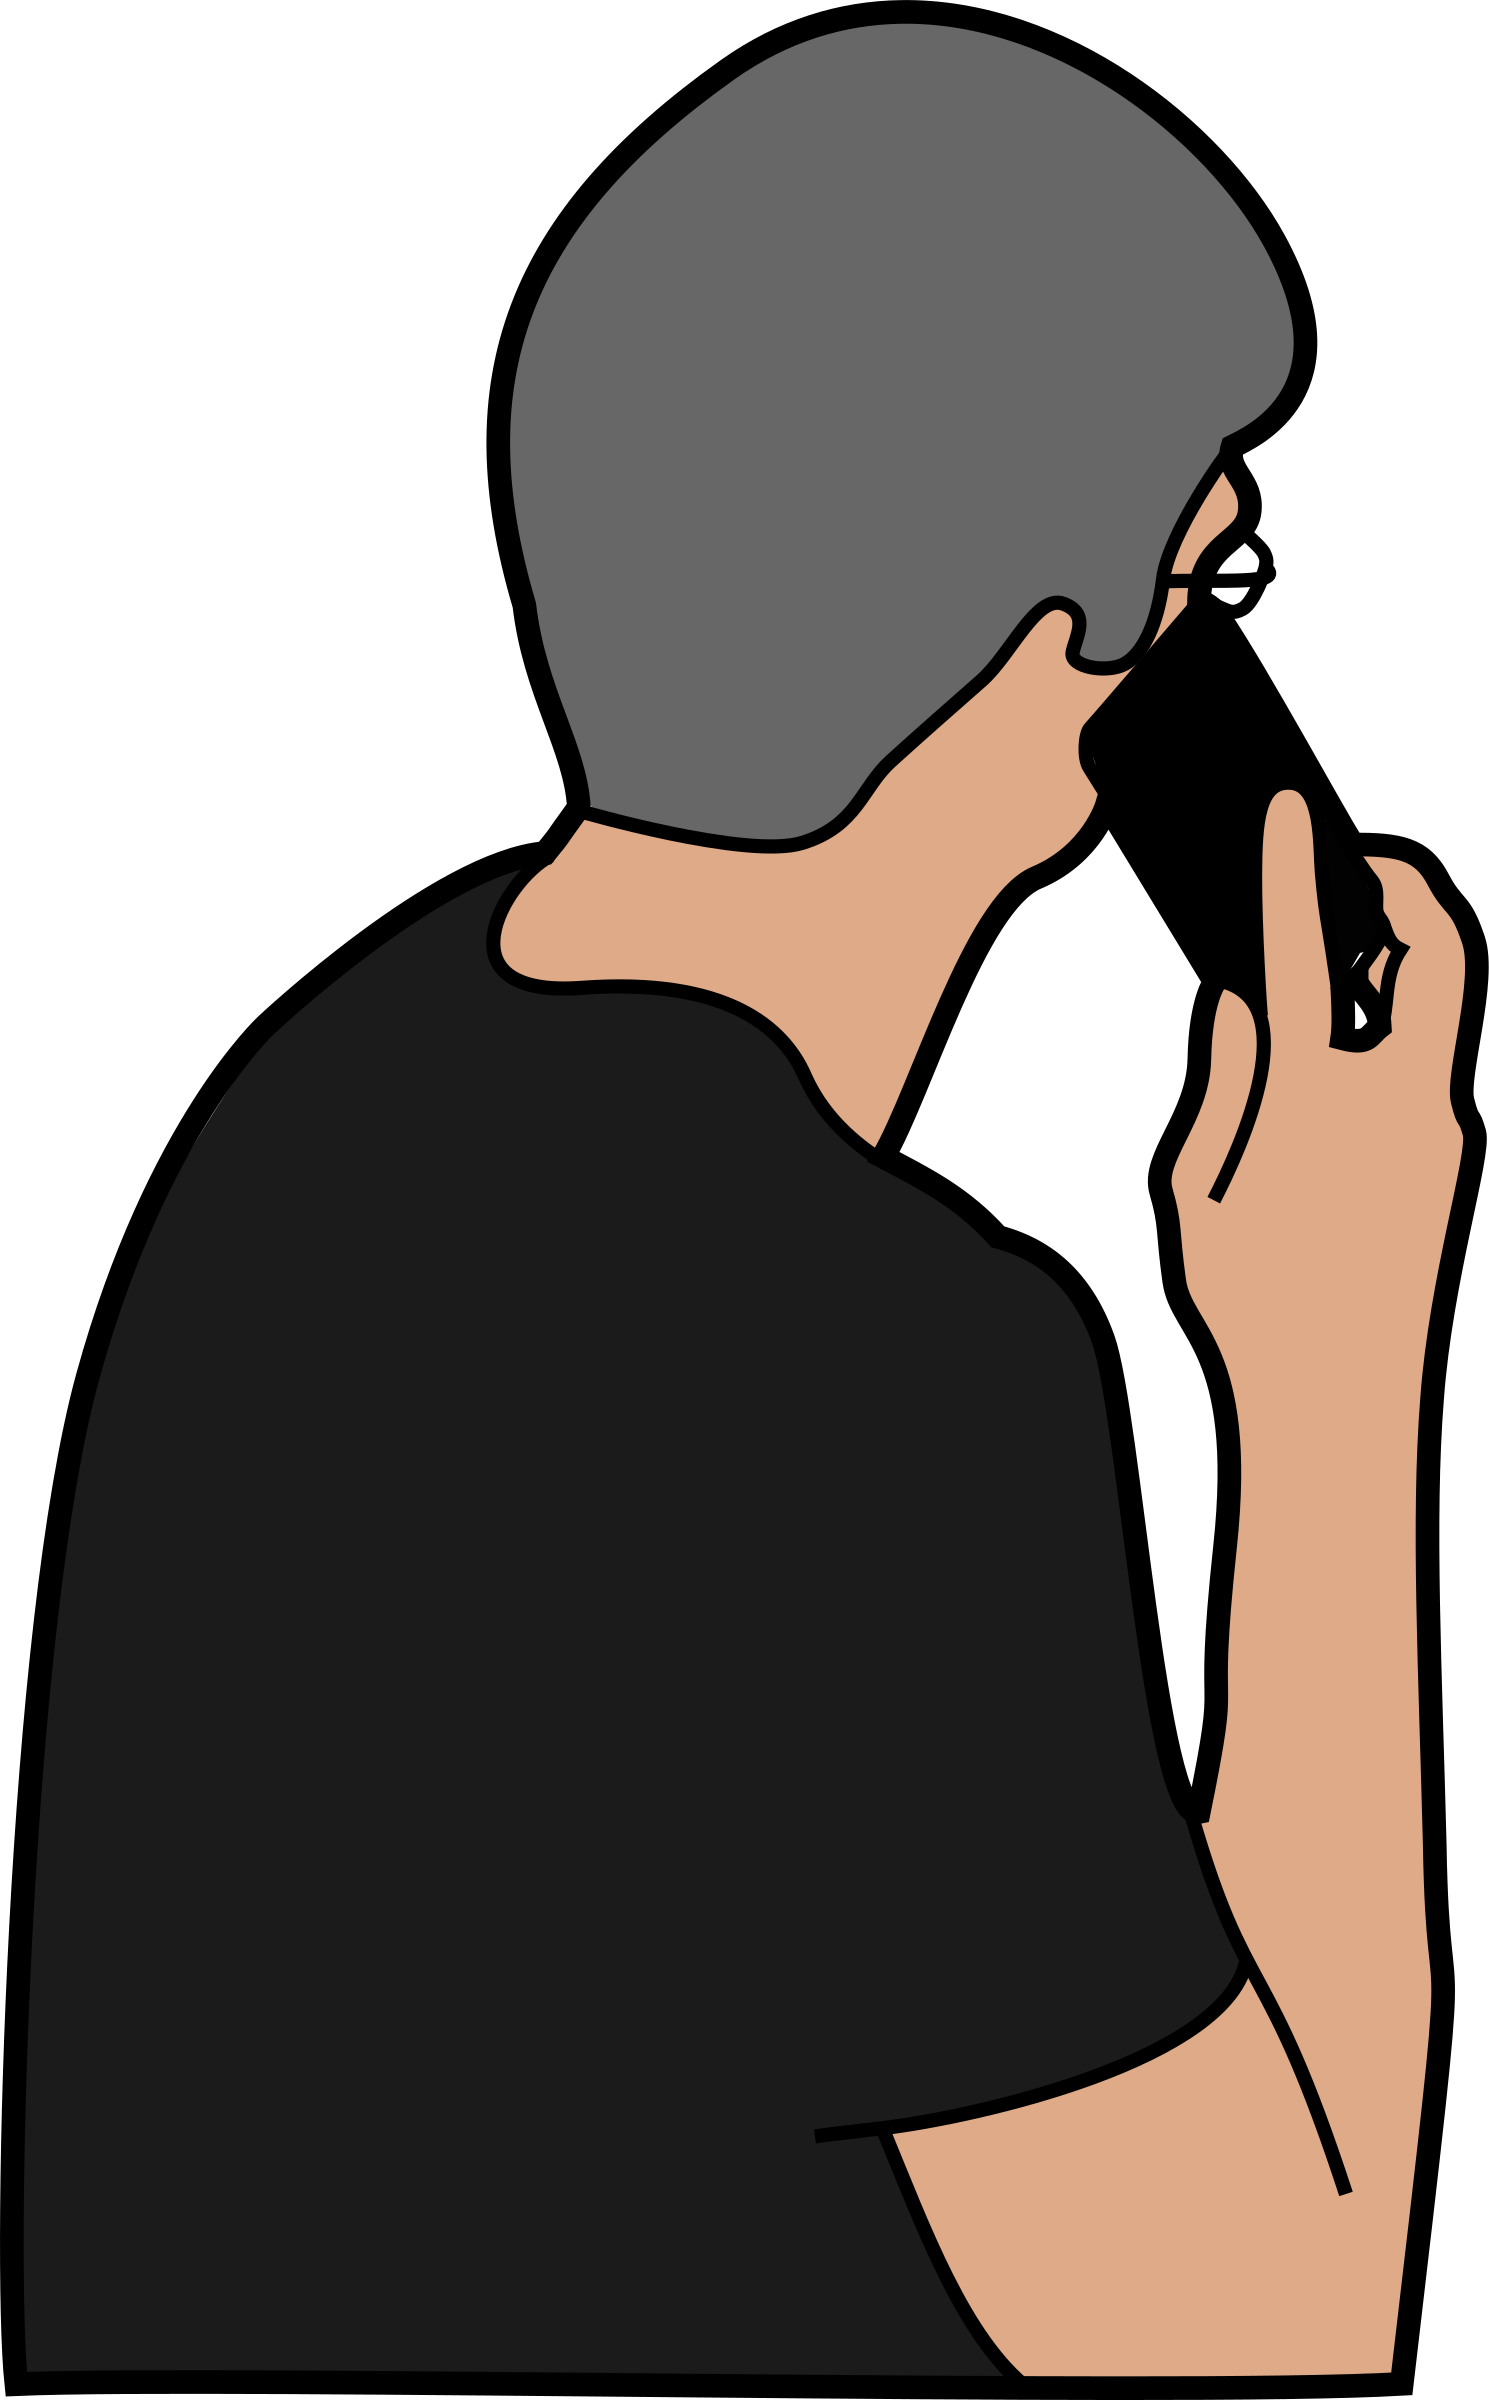 Person with icons png. Telephone clipart illustration